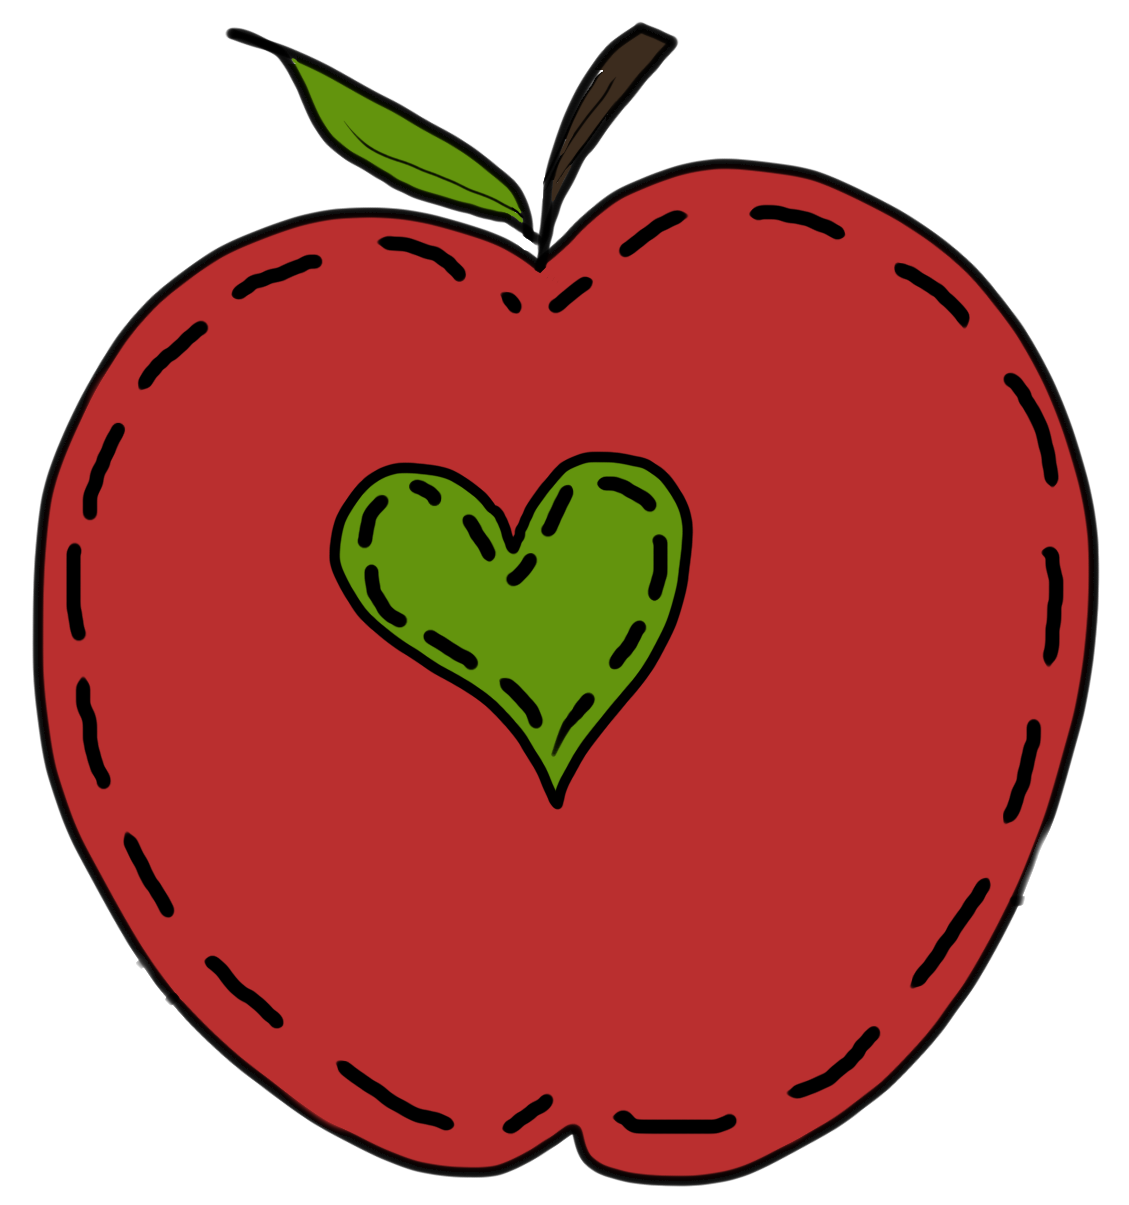 Elementary at getdrawings com. Clipart hearts school